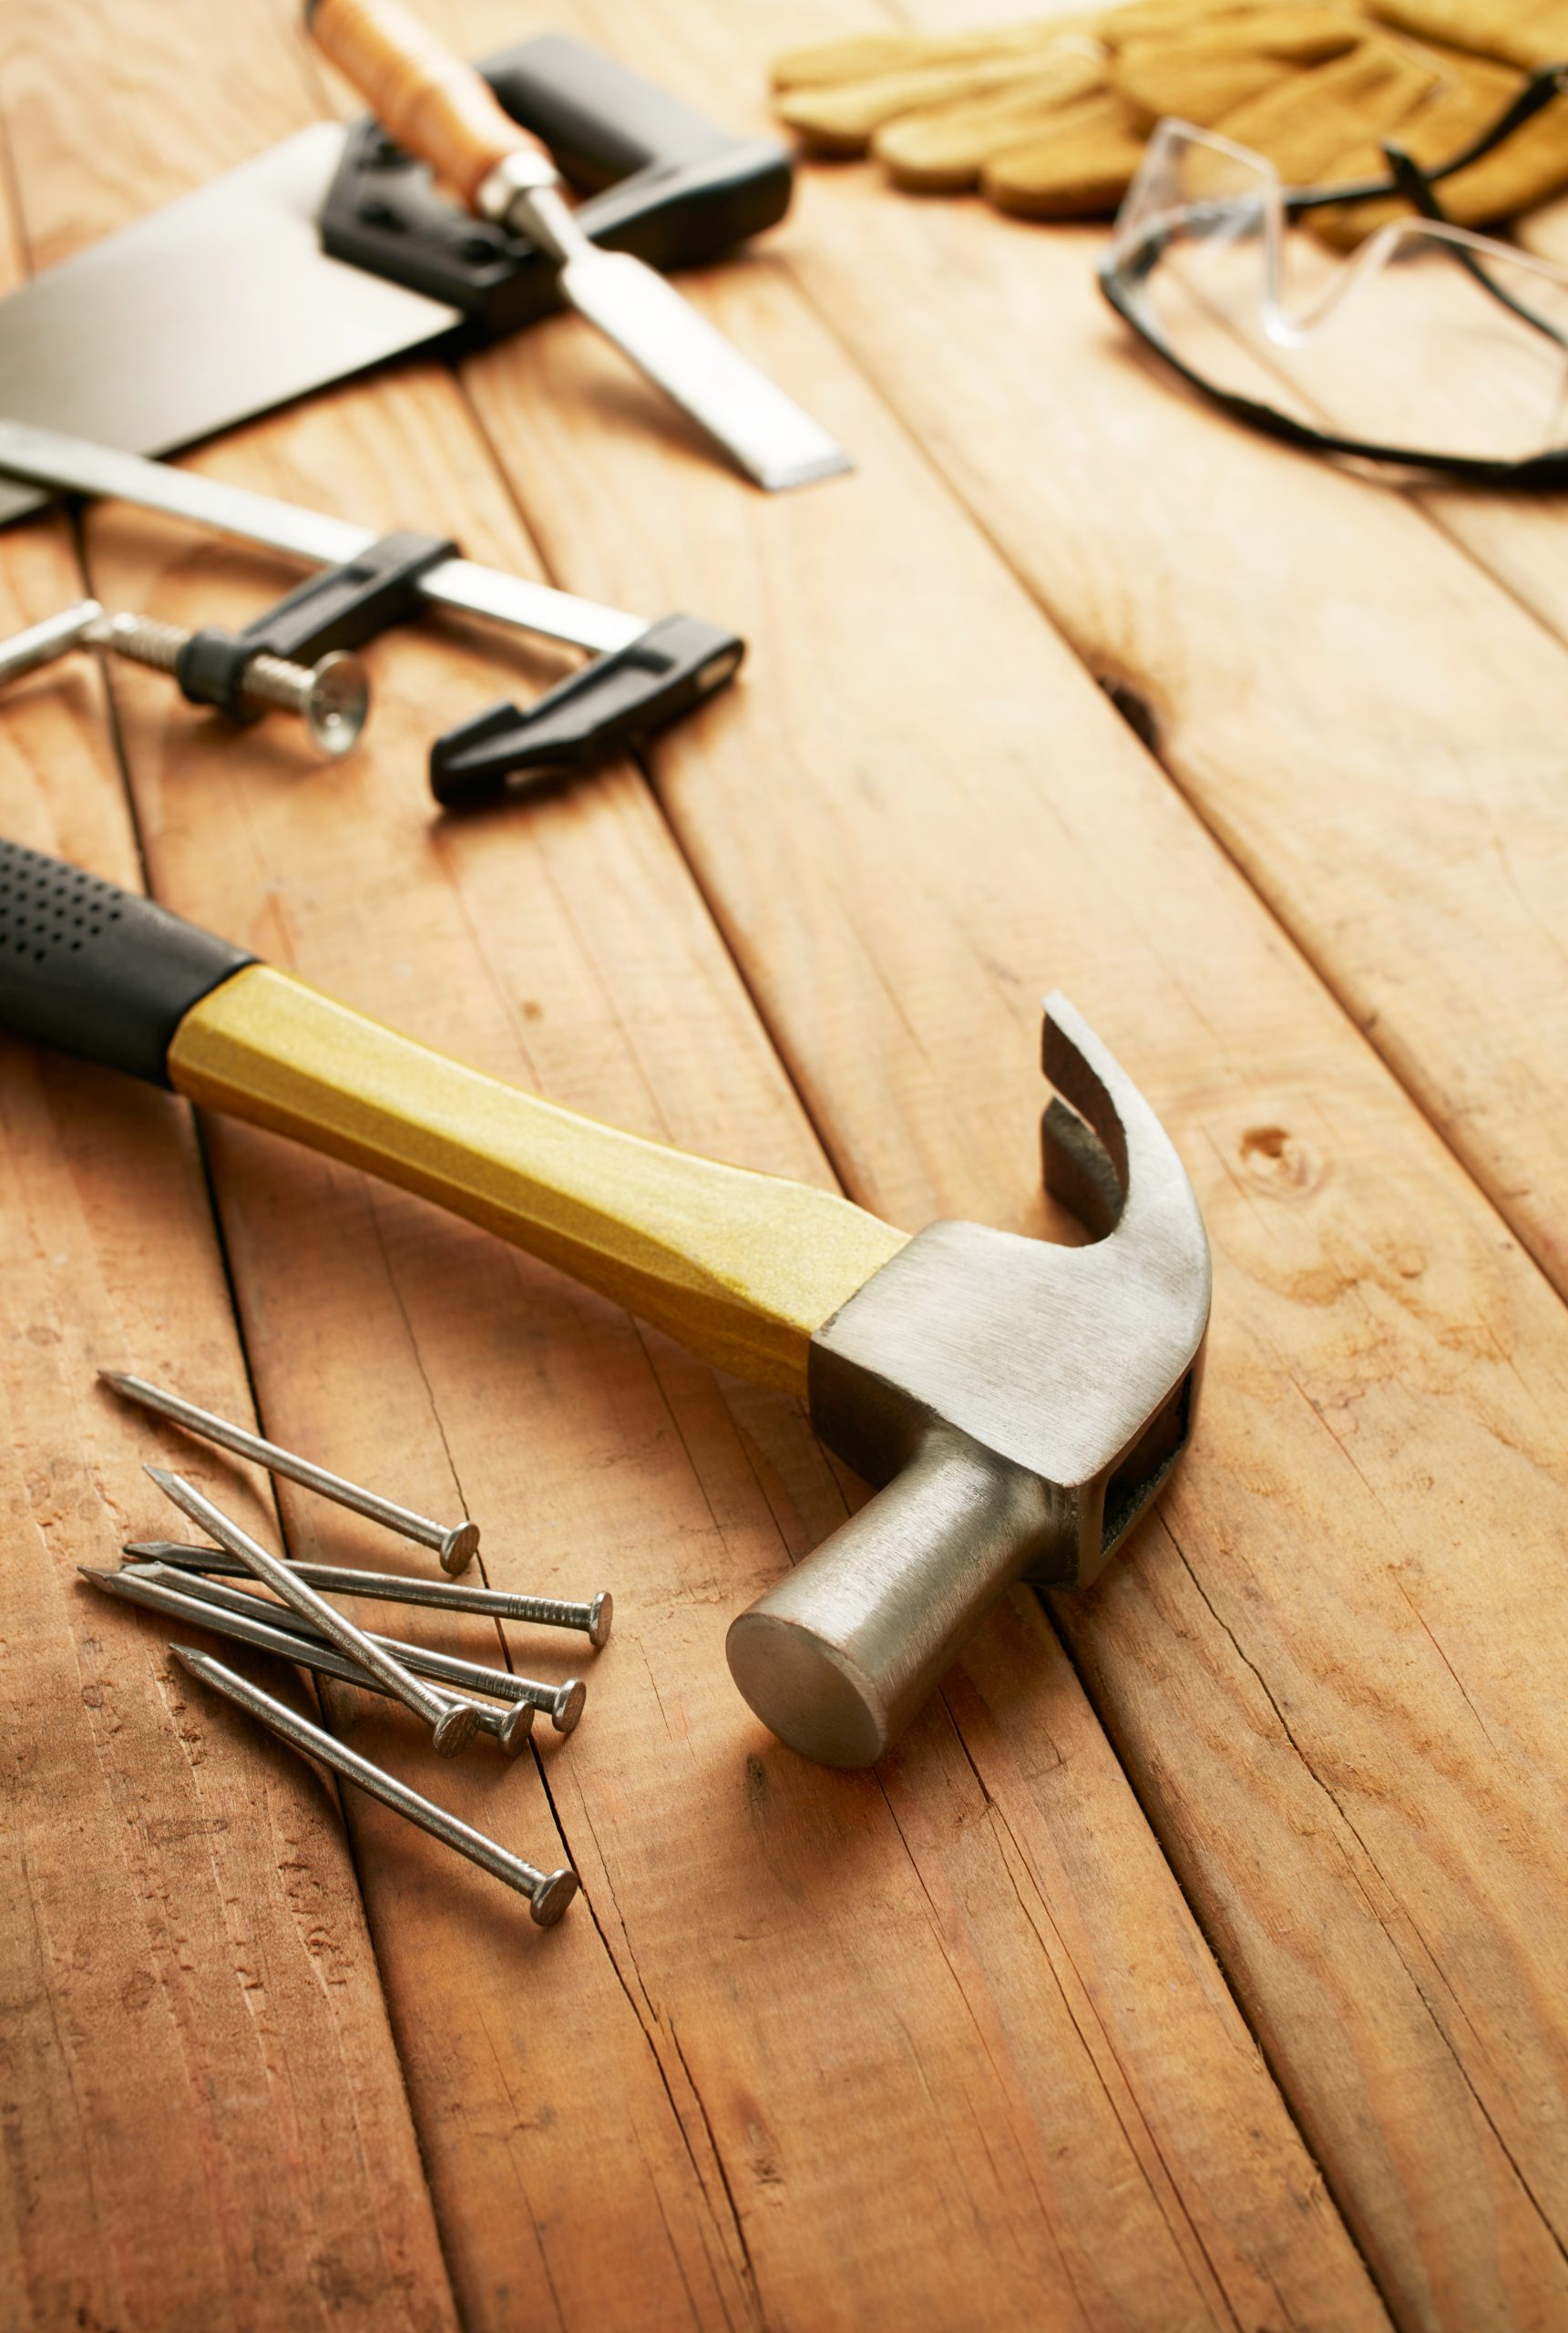 Woodworking Tools I Would Buy Now